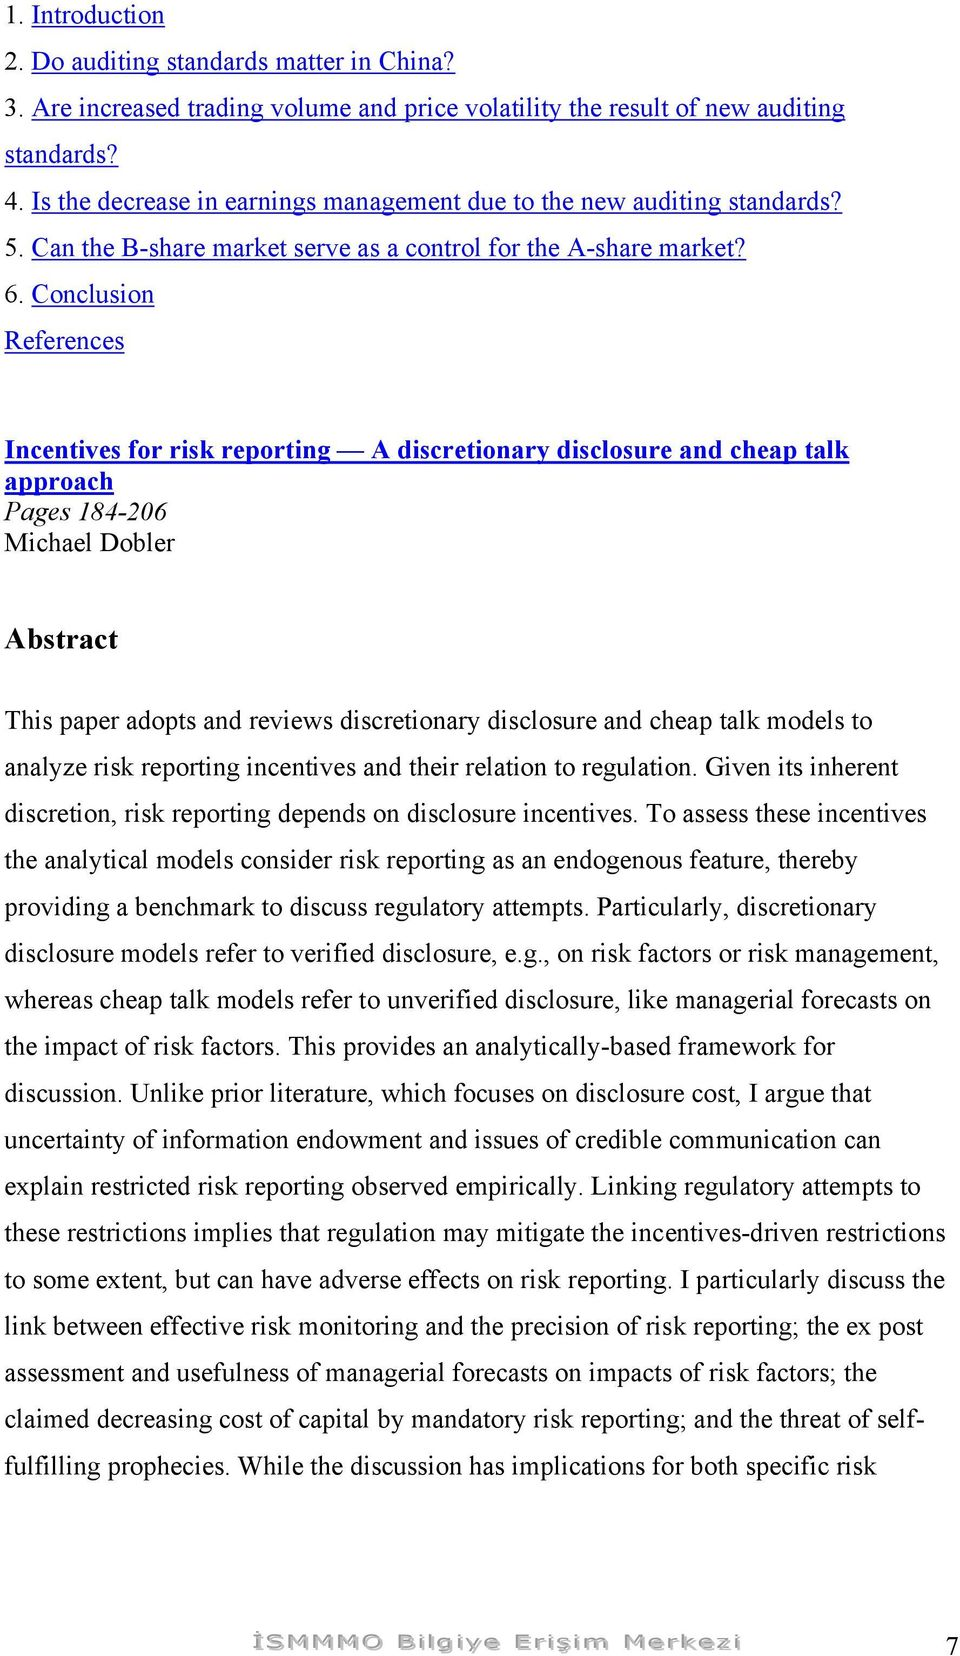 Conclusion Incentives for risk reporting A discretionary disclosure and cheap talk approach Pages 184-206 Michael Dobler Abstract This paper adopts and reviews discretionary disclosure and cheap talk